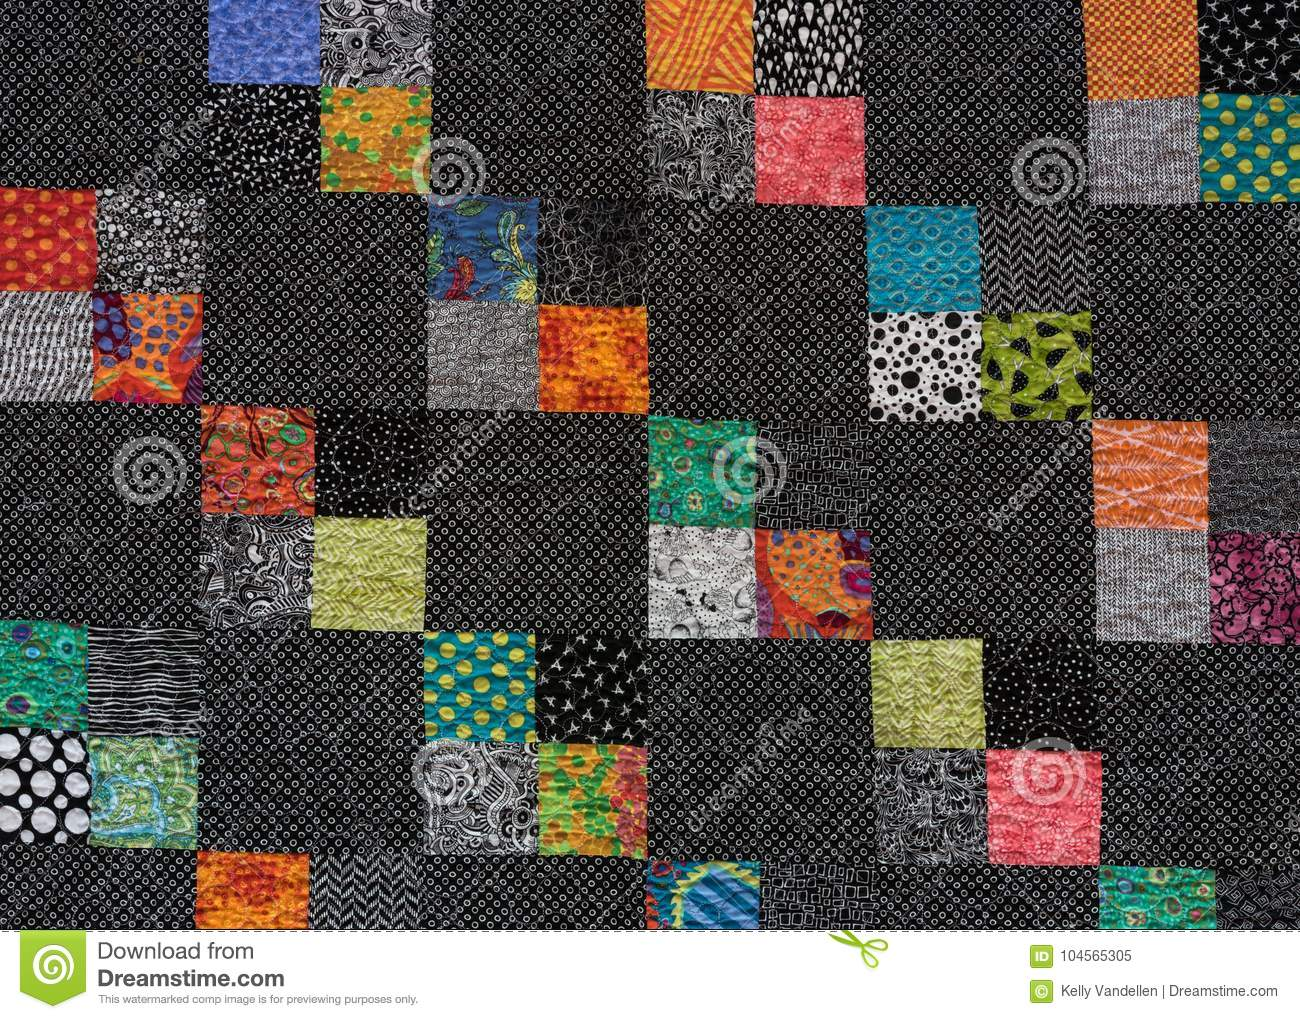 Black And White Quilt With Squares Of Color Stock Image Image Of Stitched Crafts 104565305